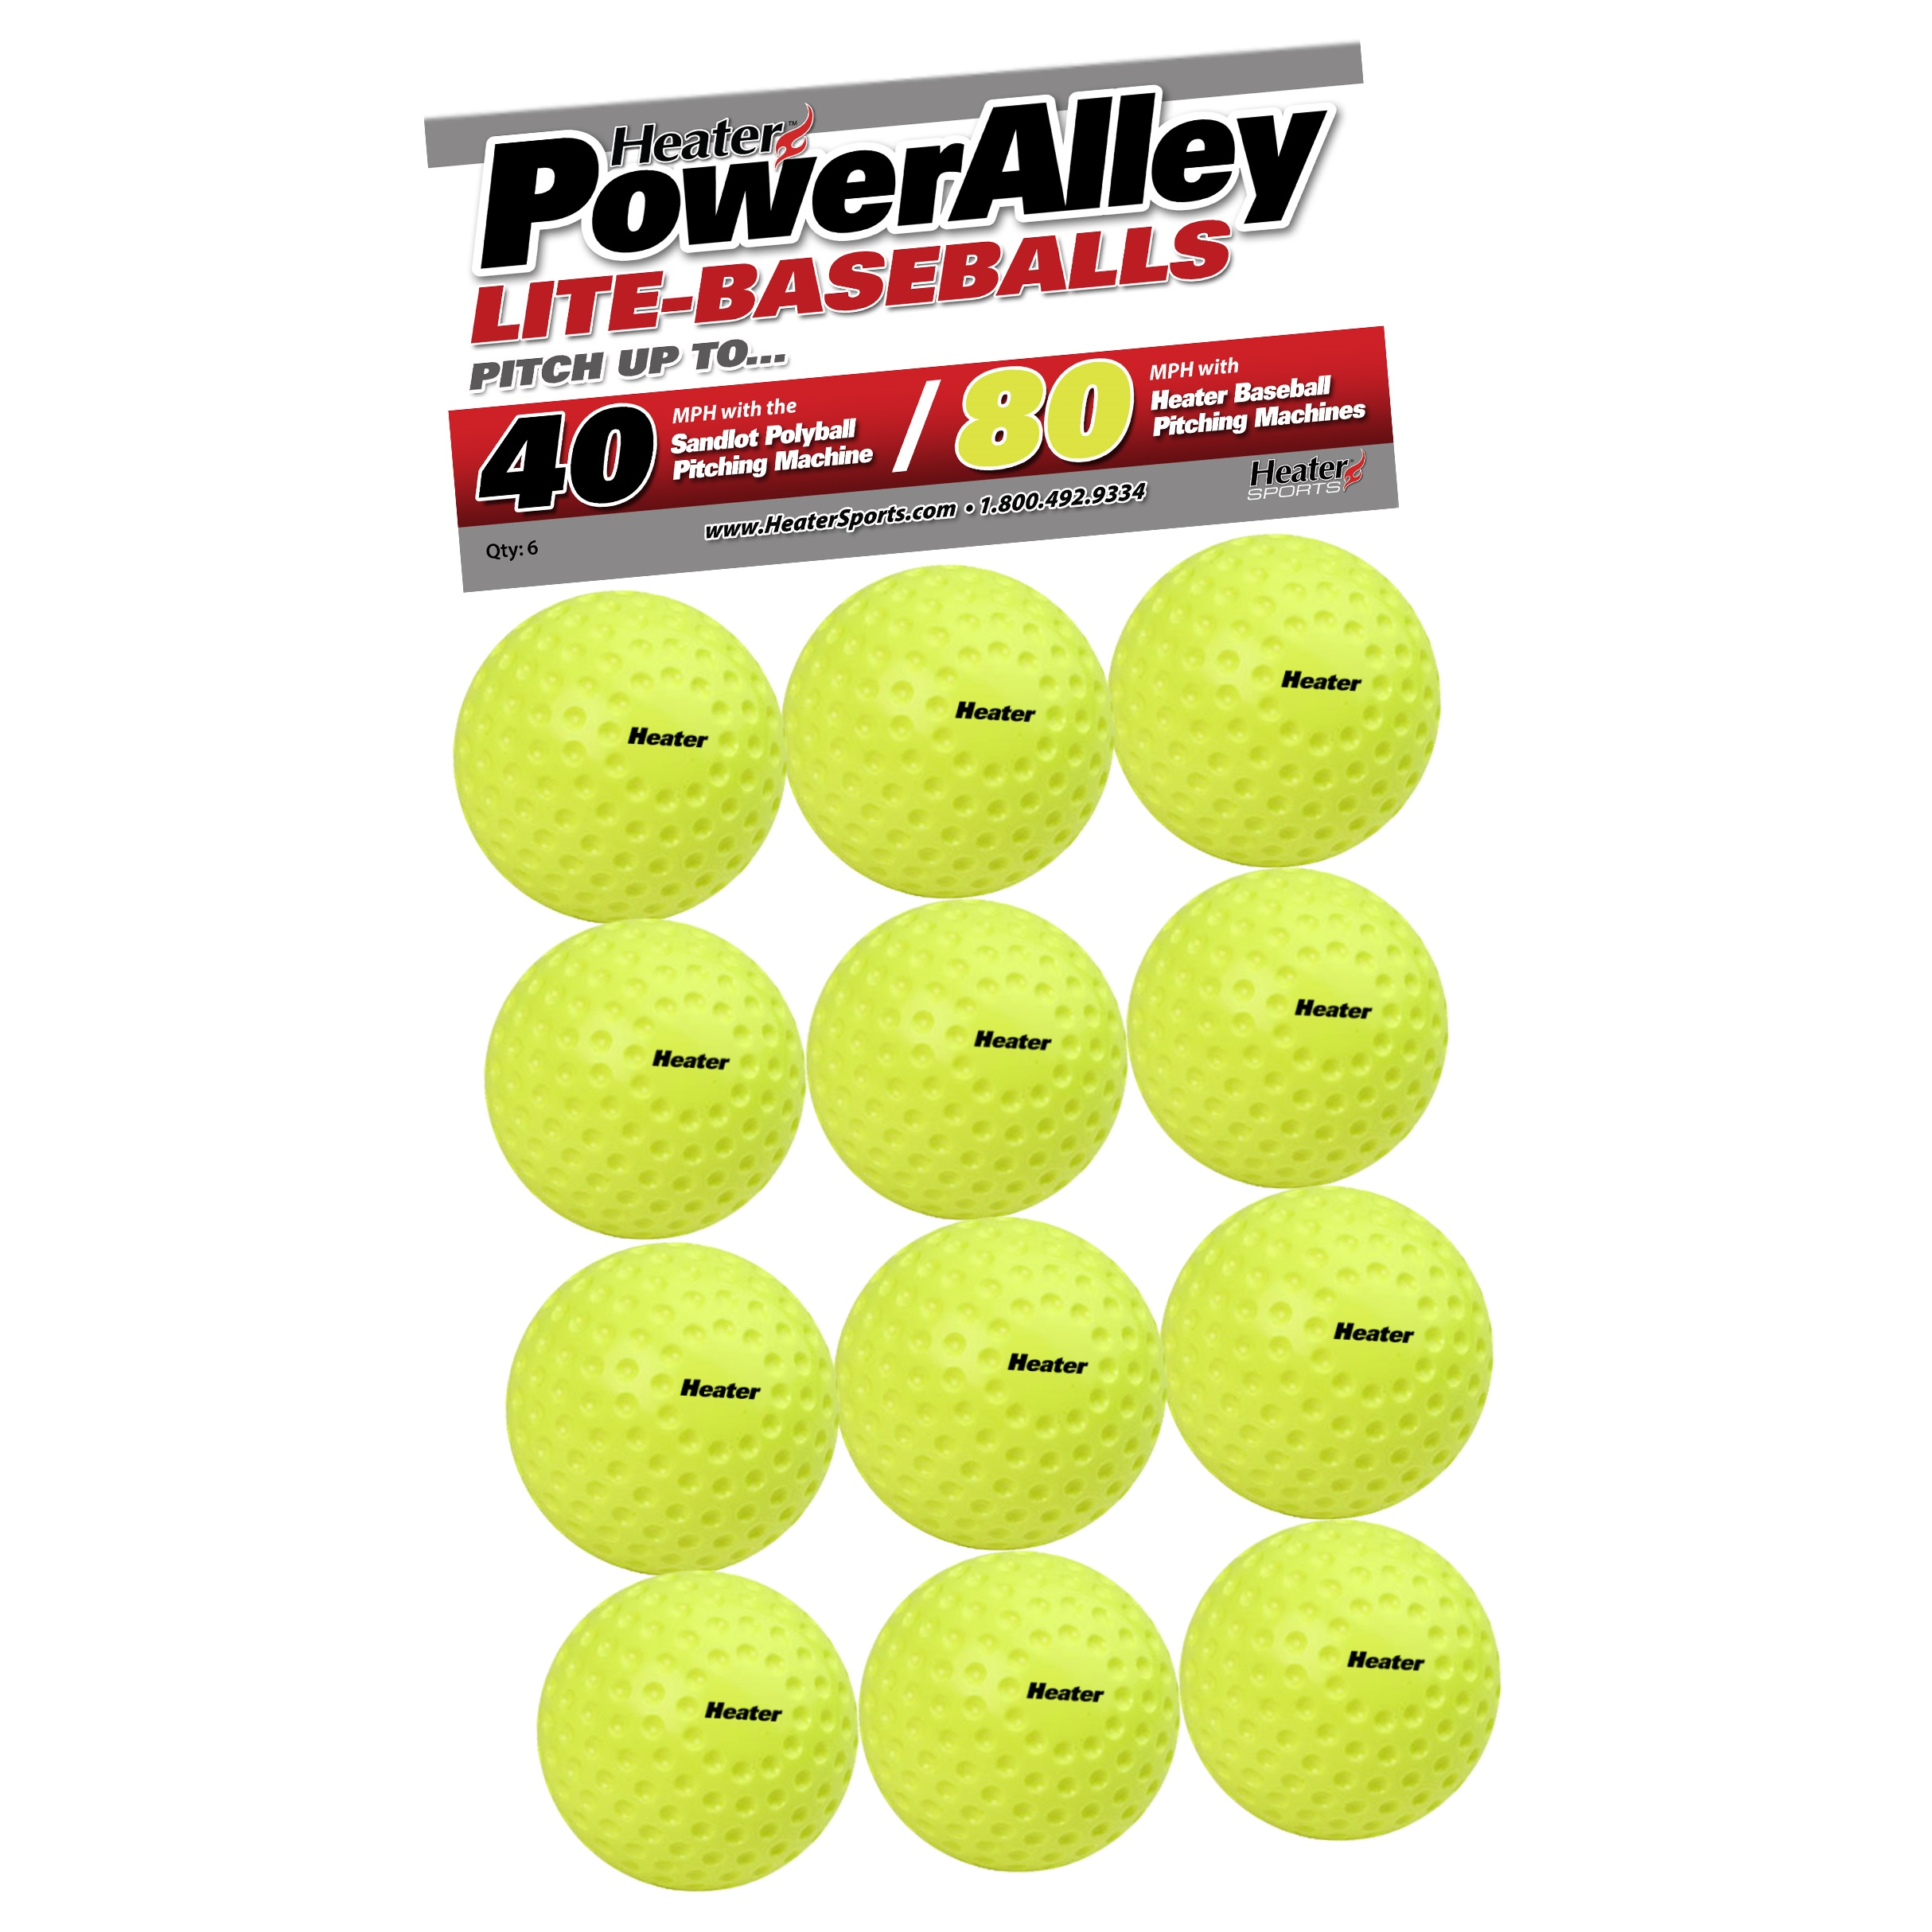 PowerAlley 80/Sandlot 40 MPH Lite Baseballs